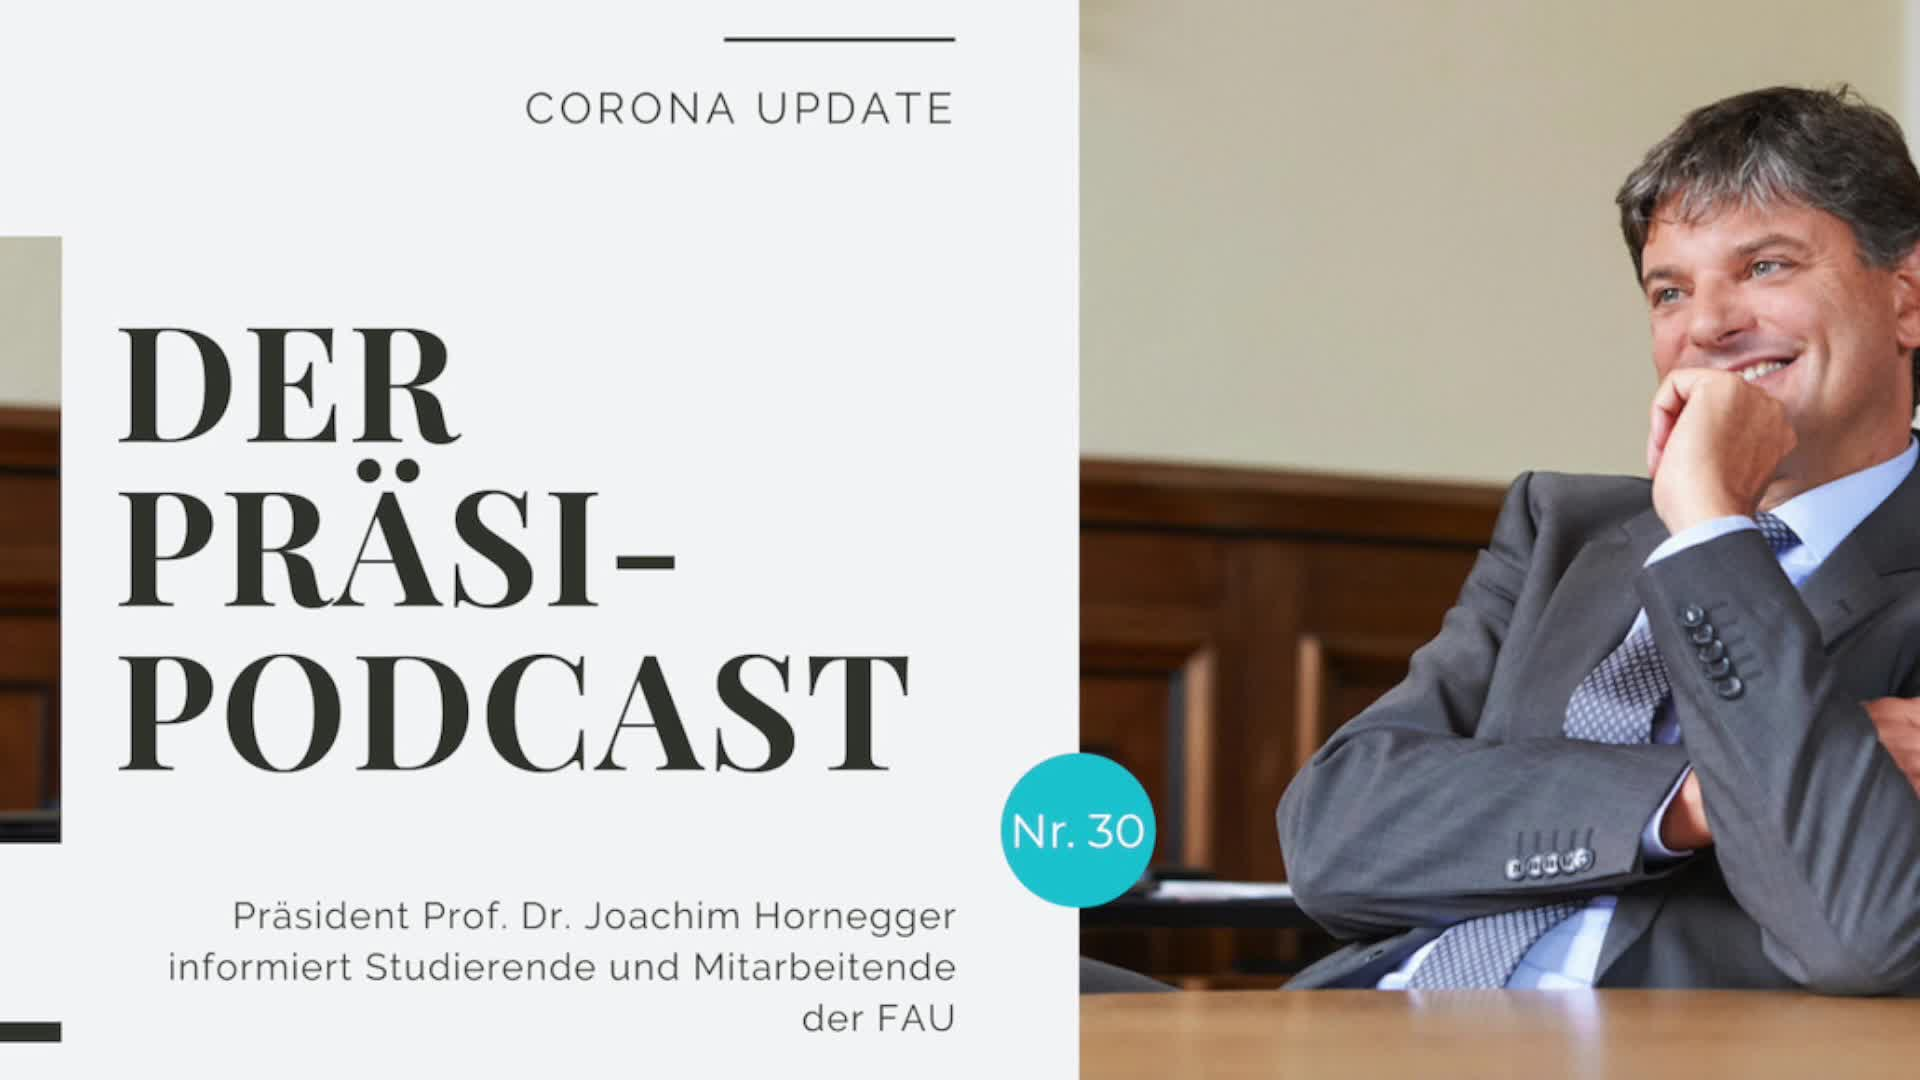 """Der Präsi-Podcast"" vom 28. Oktober 2020 preview image"